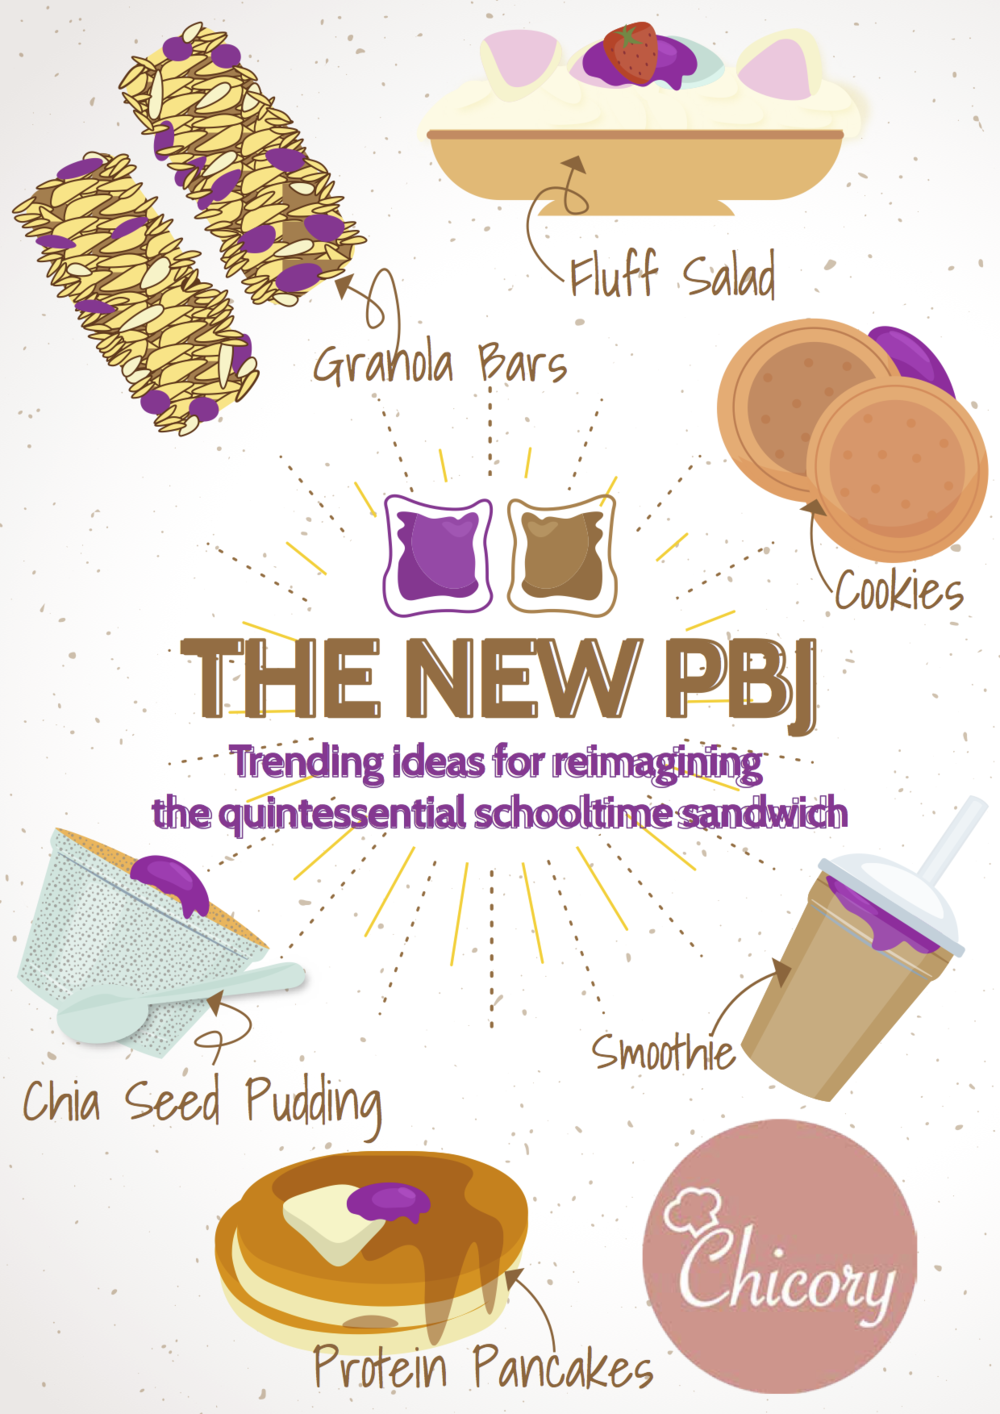 PBJ food trends back to school - chicory